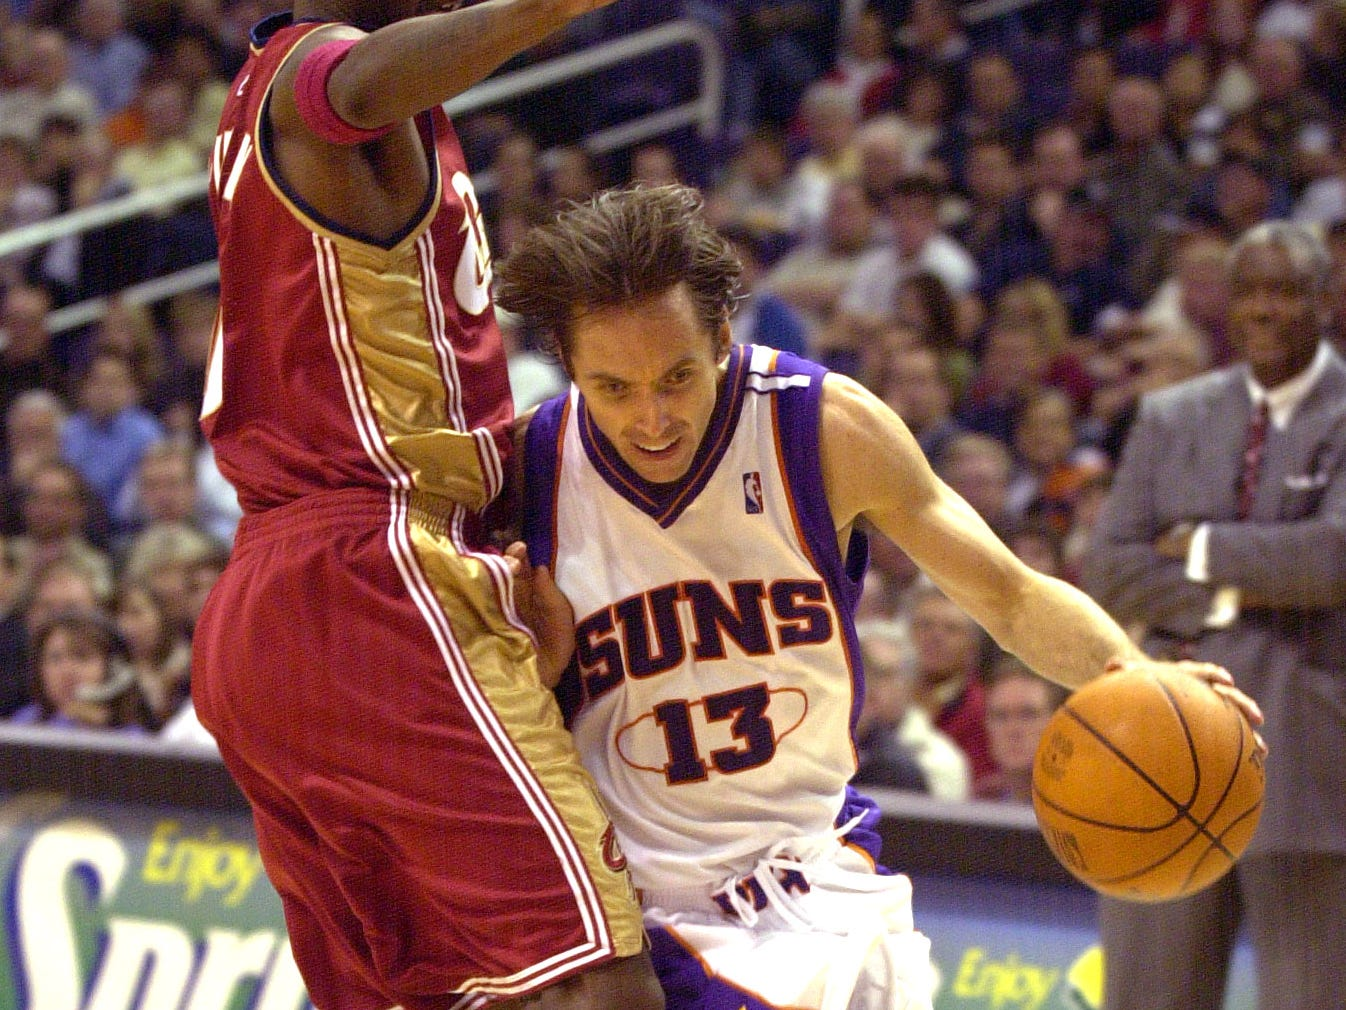 2004-05 | Suns MVP: Steve Nash. Nash returned to the Valley and helped transform the Suns from underachievers to championship contenders.